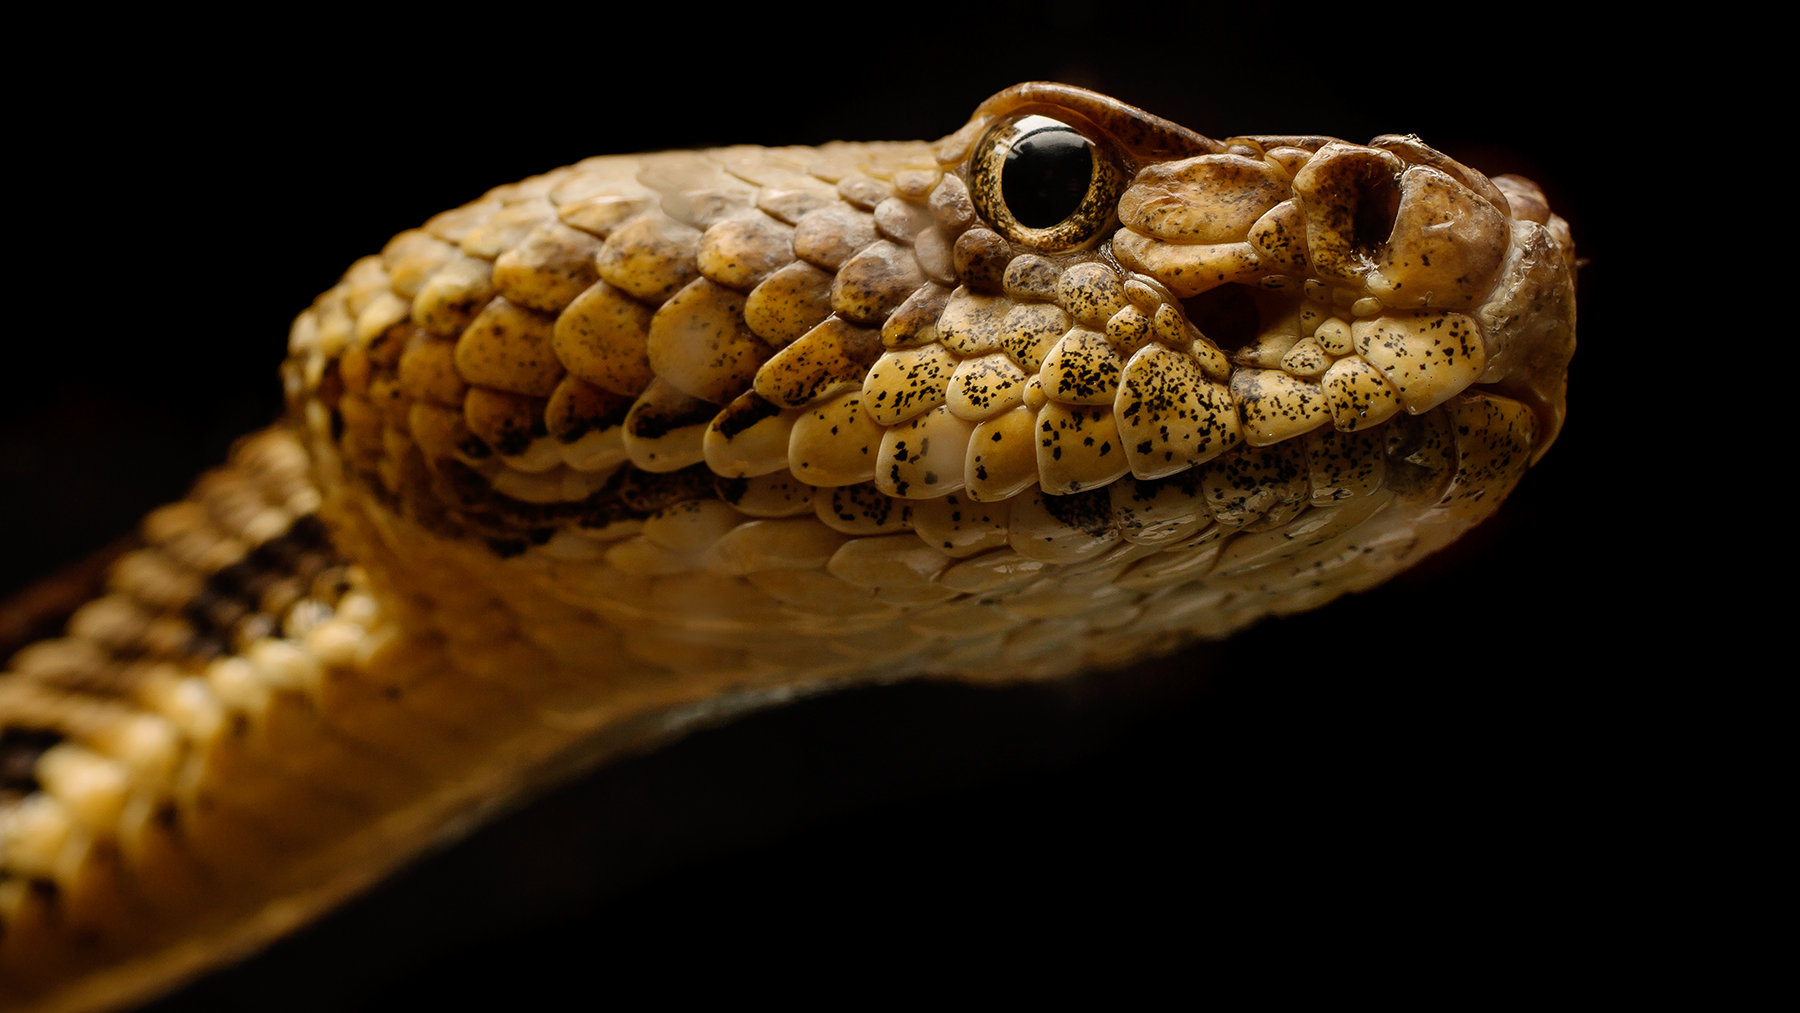 a timber rattler, one of more than 30 species of snakes susceptible to the fungal pathogen